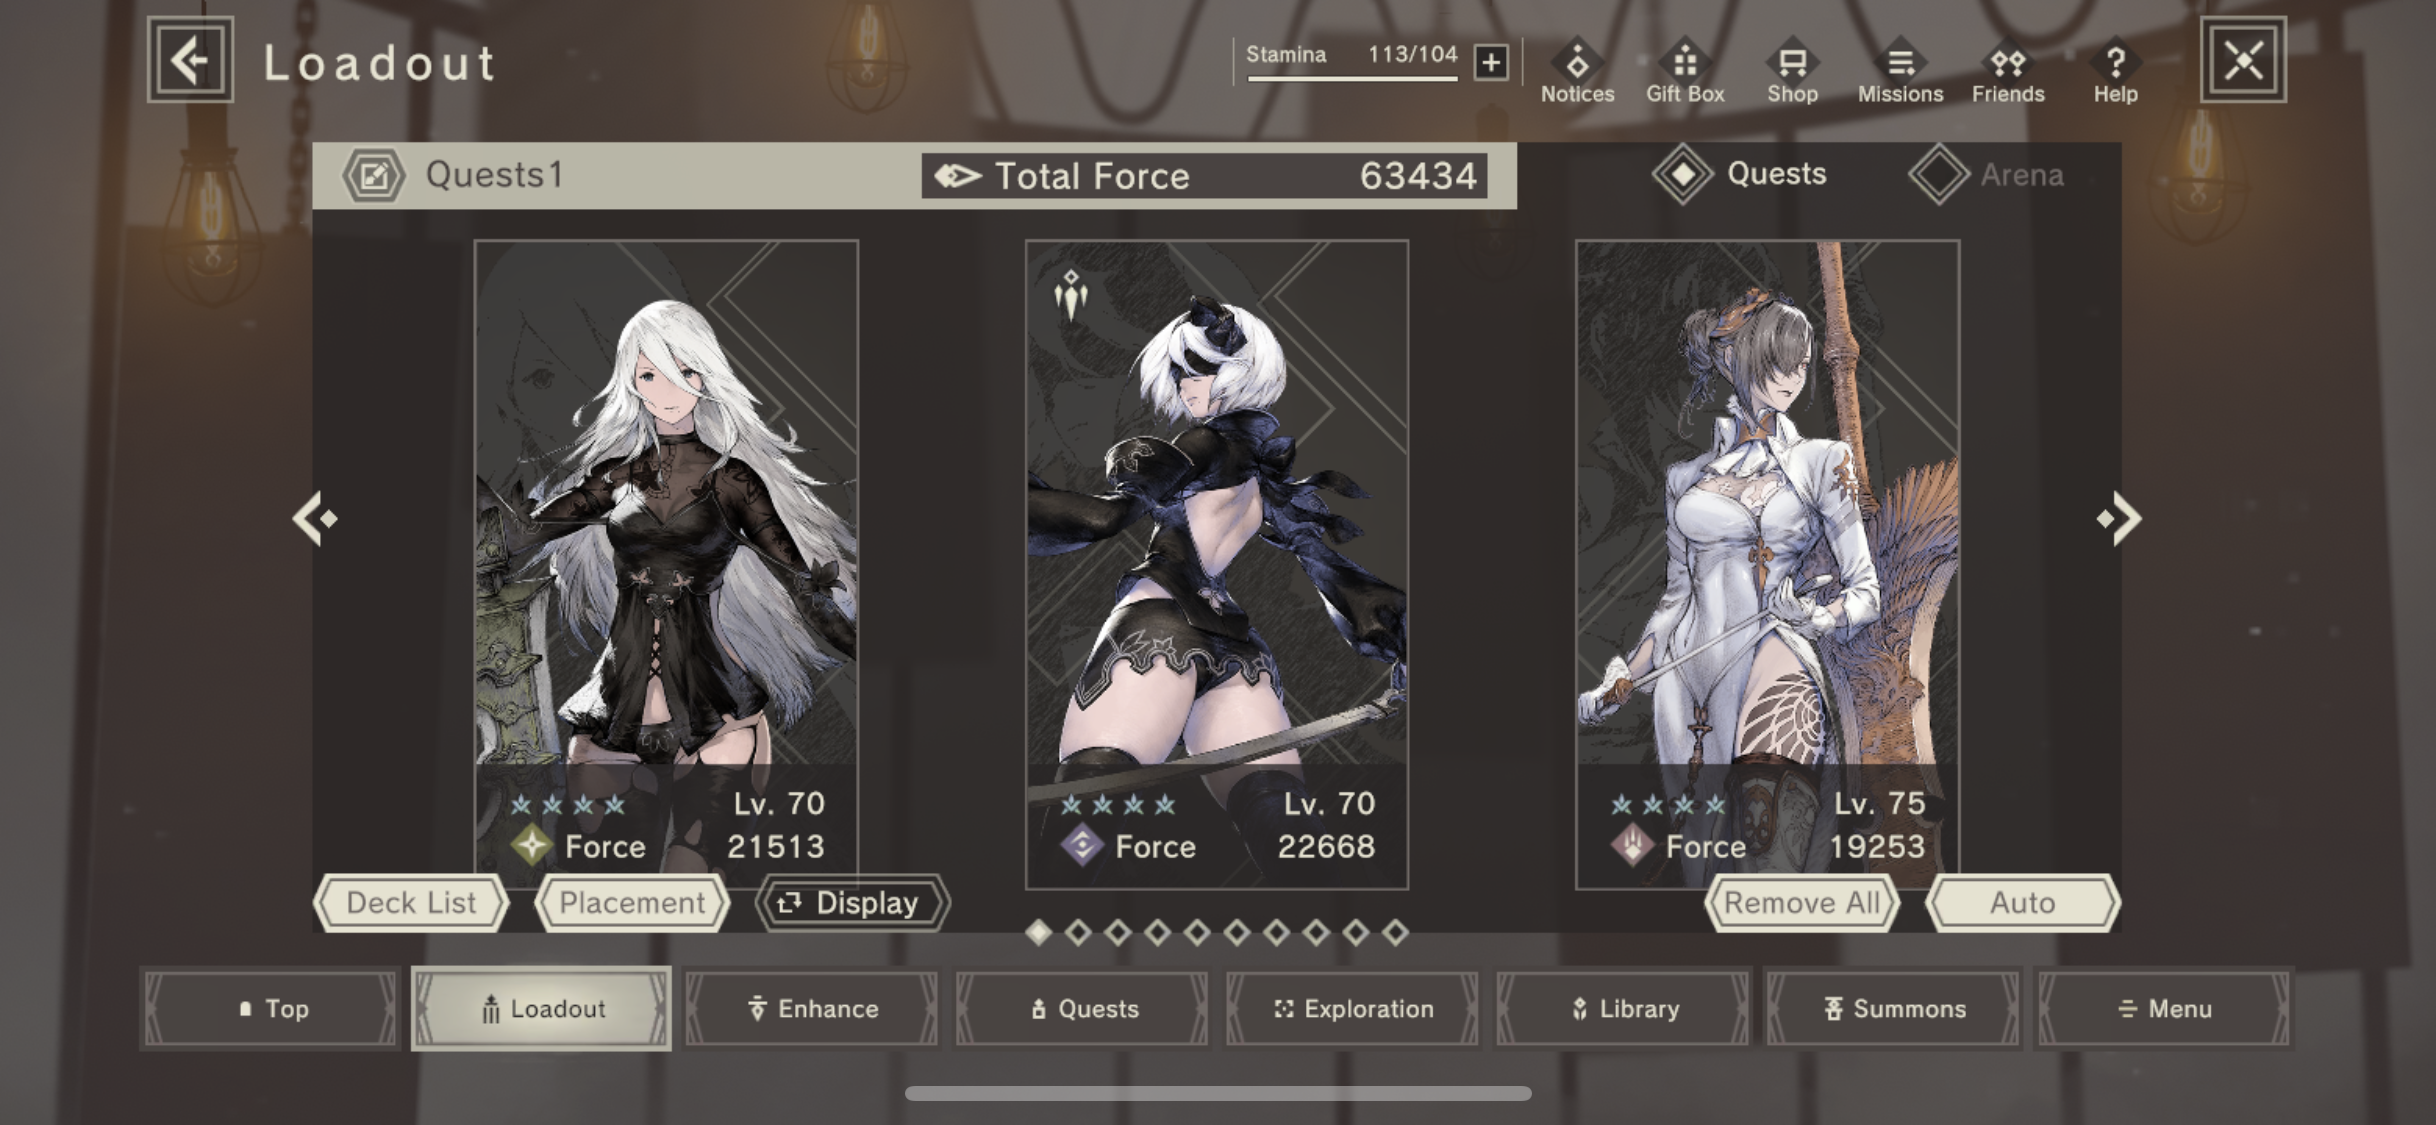 How to Quickly Earn Gold in NieR Reincarnation 3